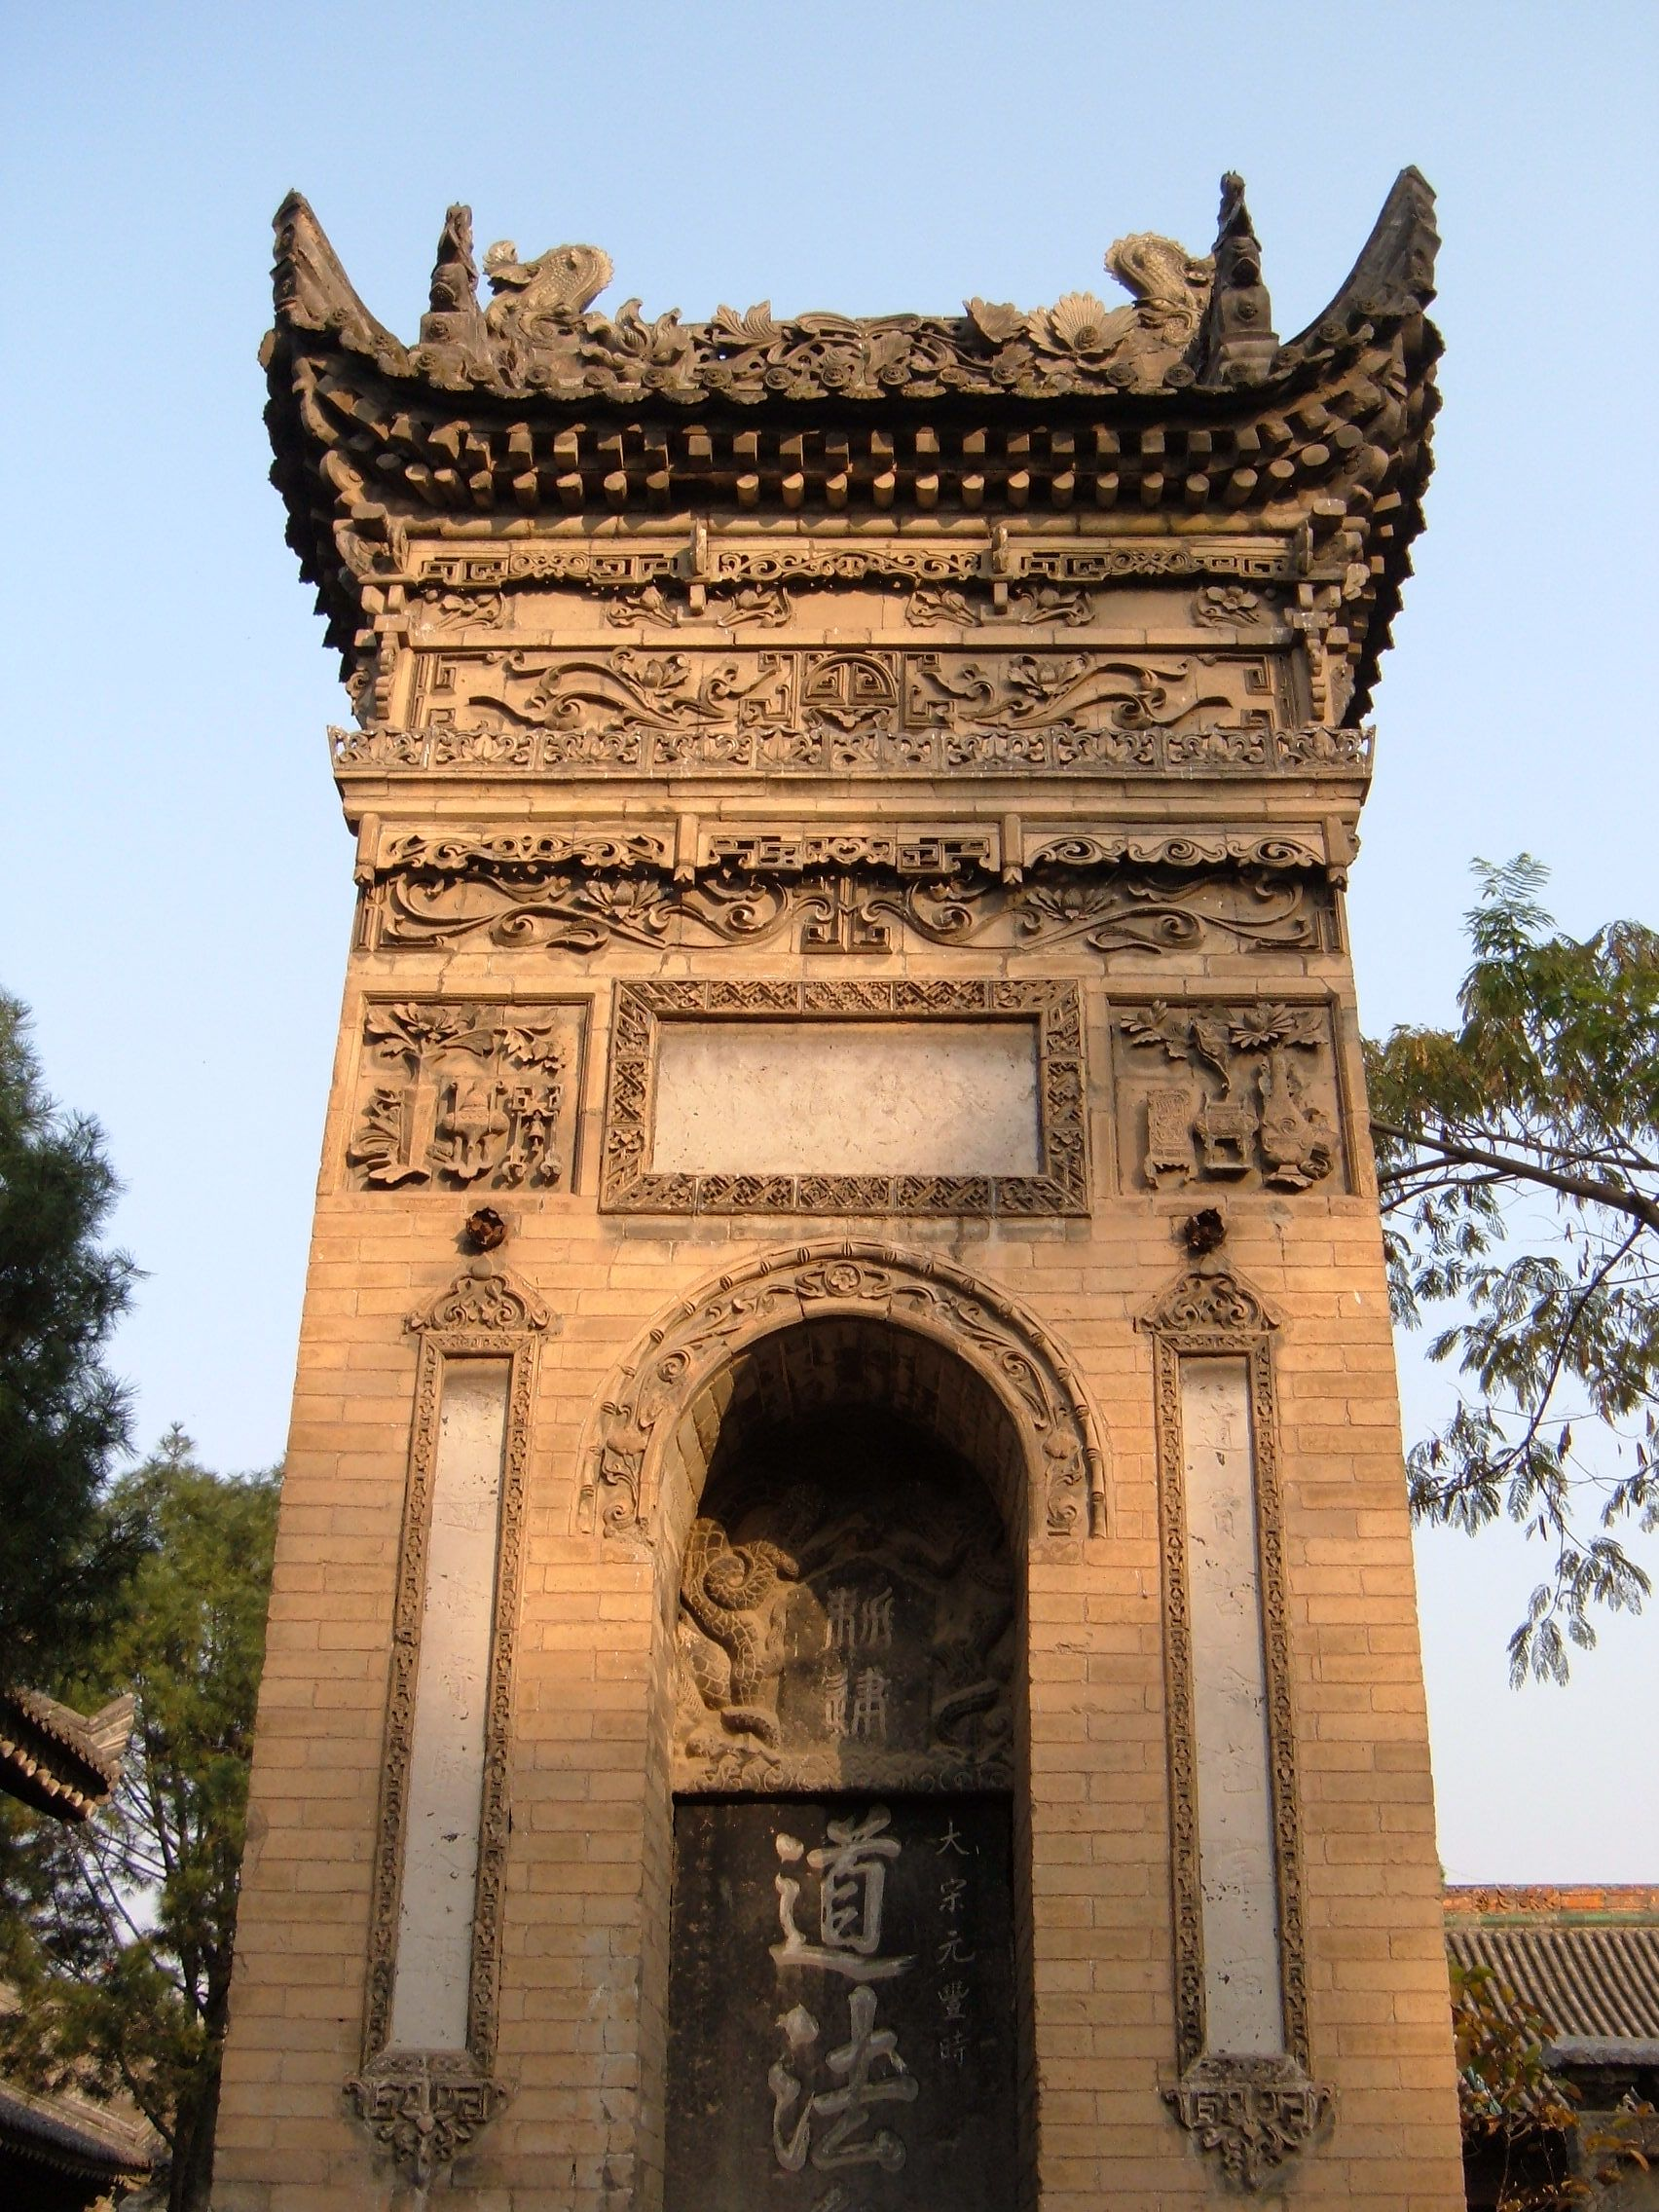 The most beautiful mosques to visit: the Great Mosque of Xi'an, Xi'an, China